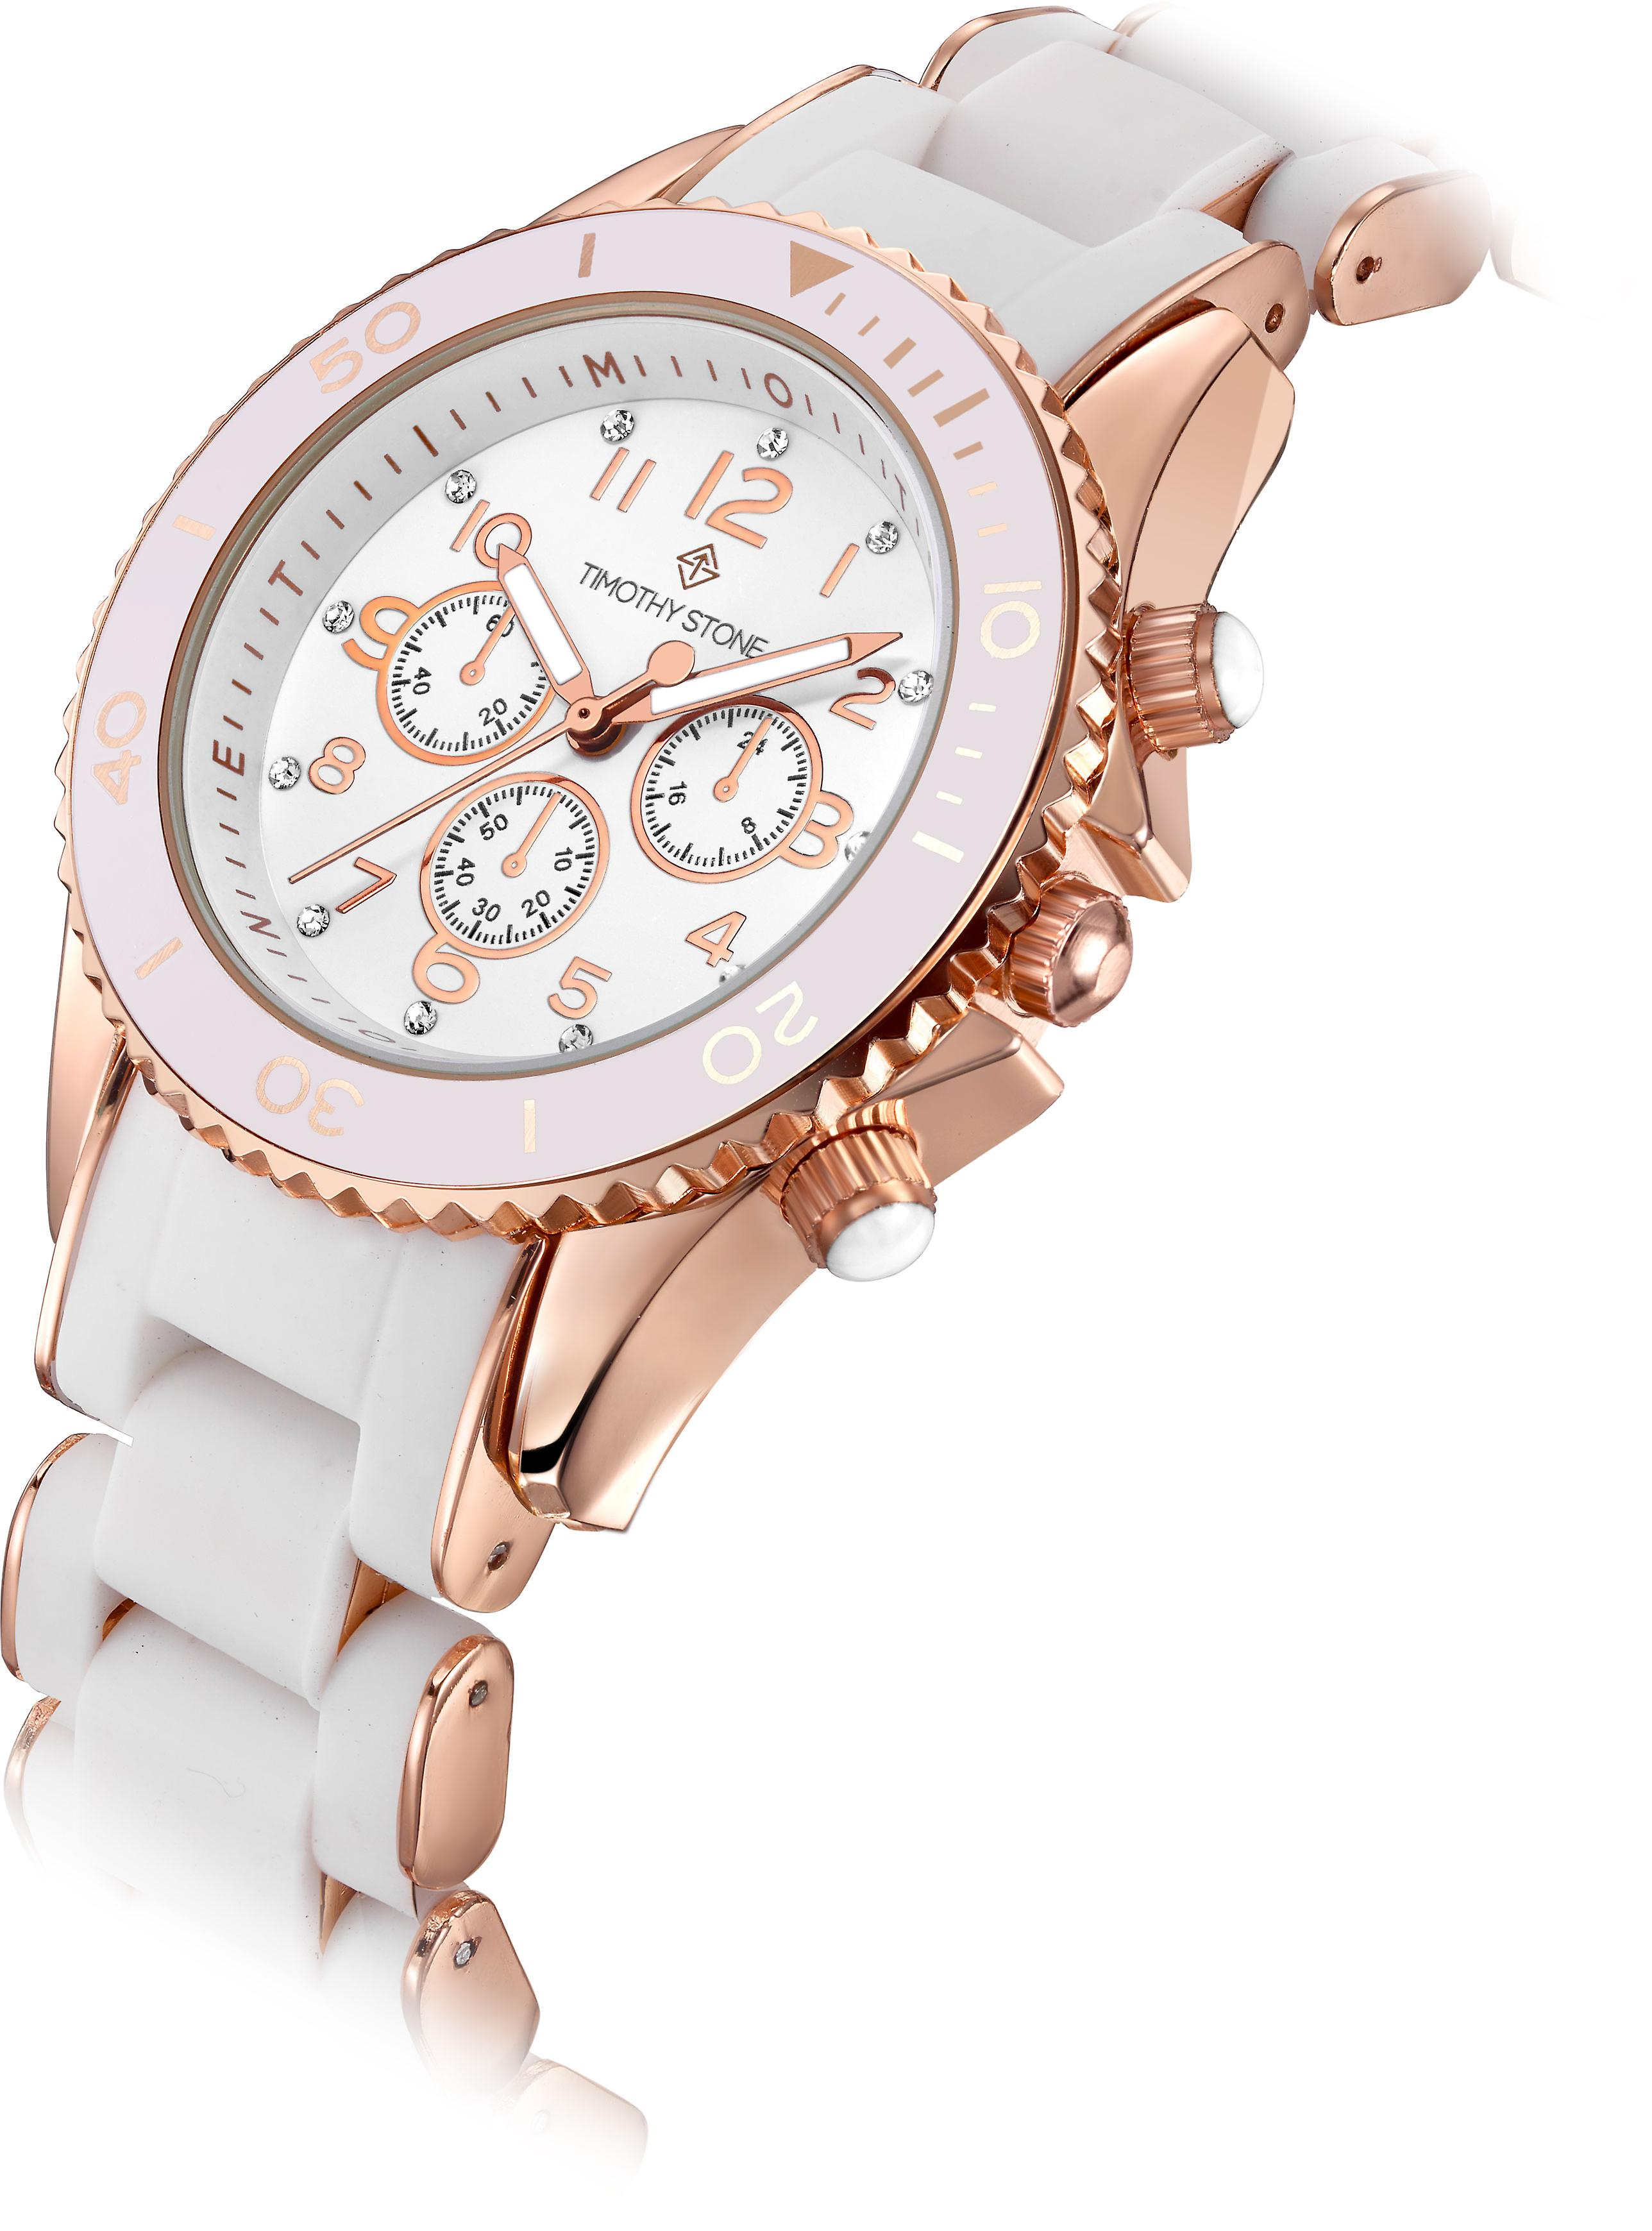 Timothy Stone Women's AMBER-SILICONE White and Rose Gold-Tone Watch